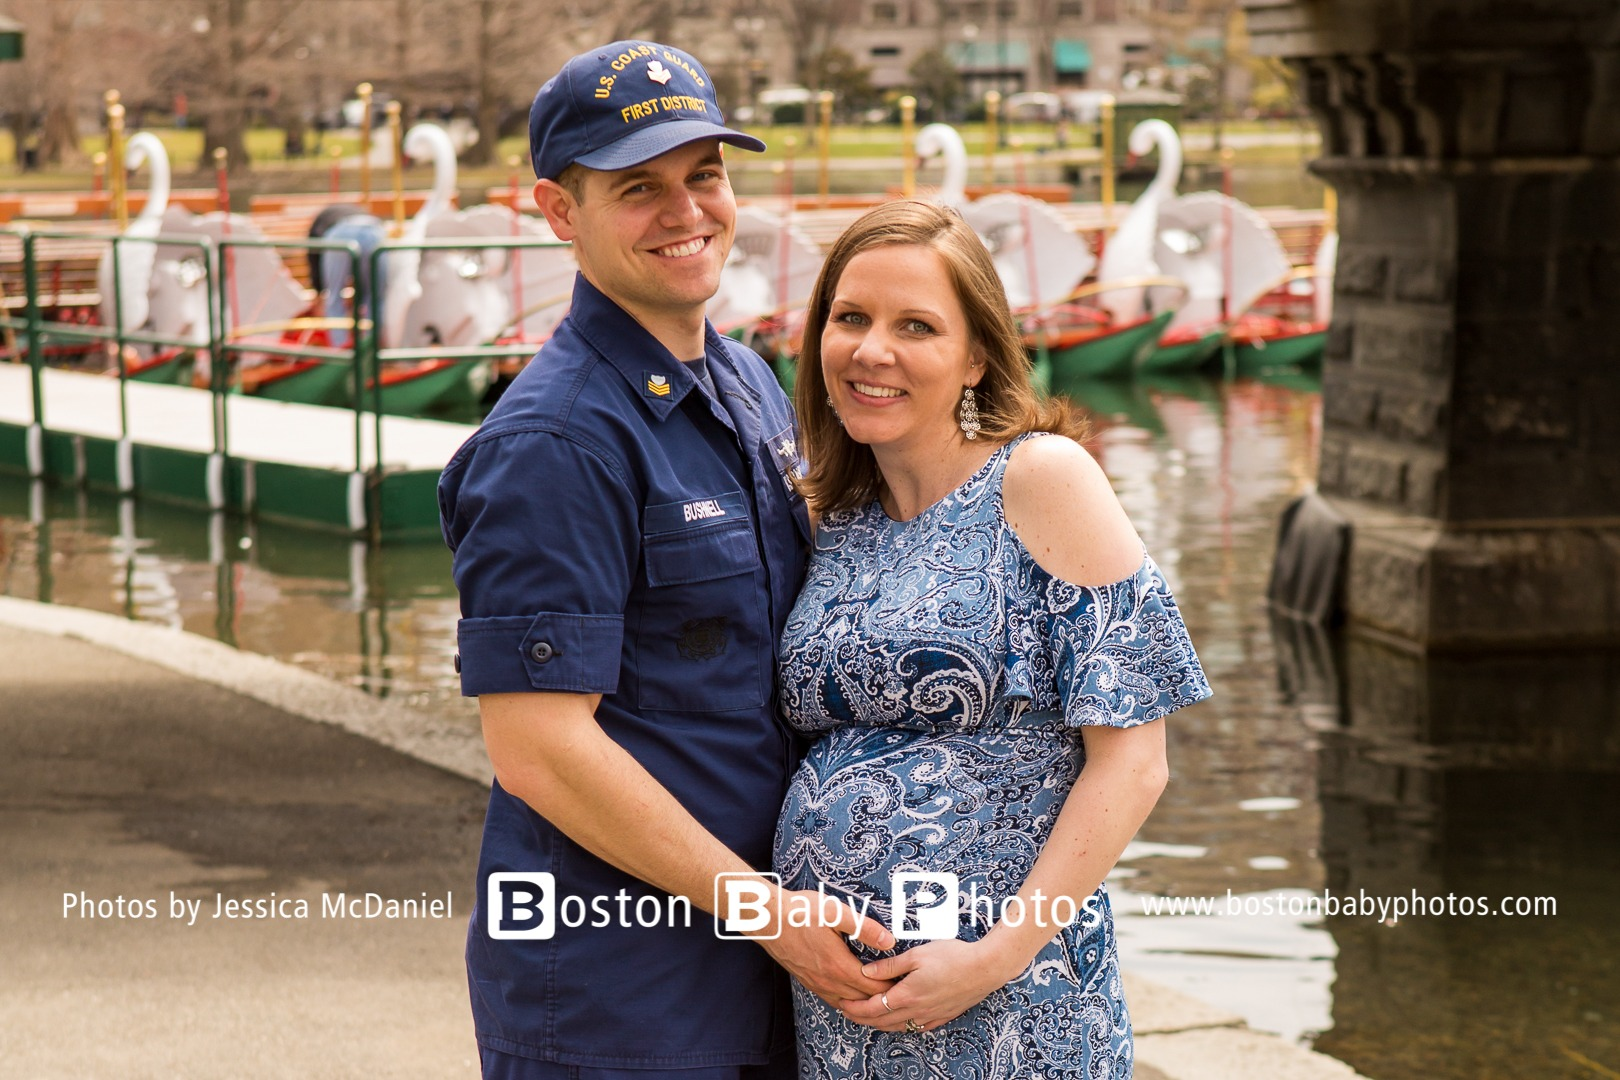 Public Garden Maternity Minishoot - 20 minutes of fun